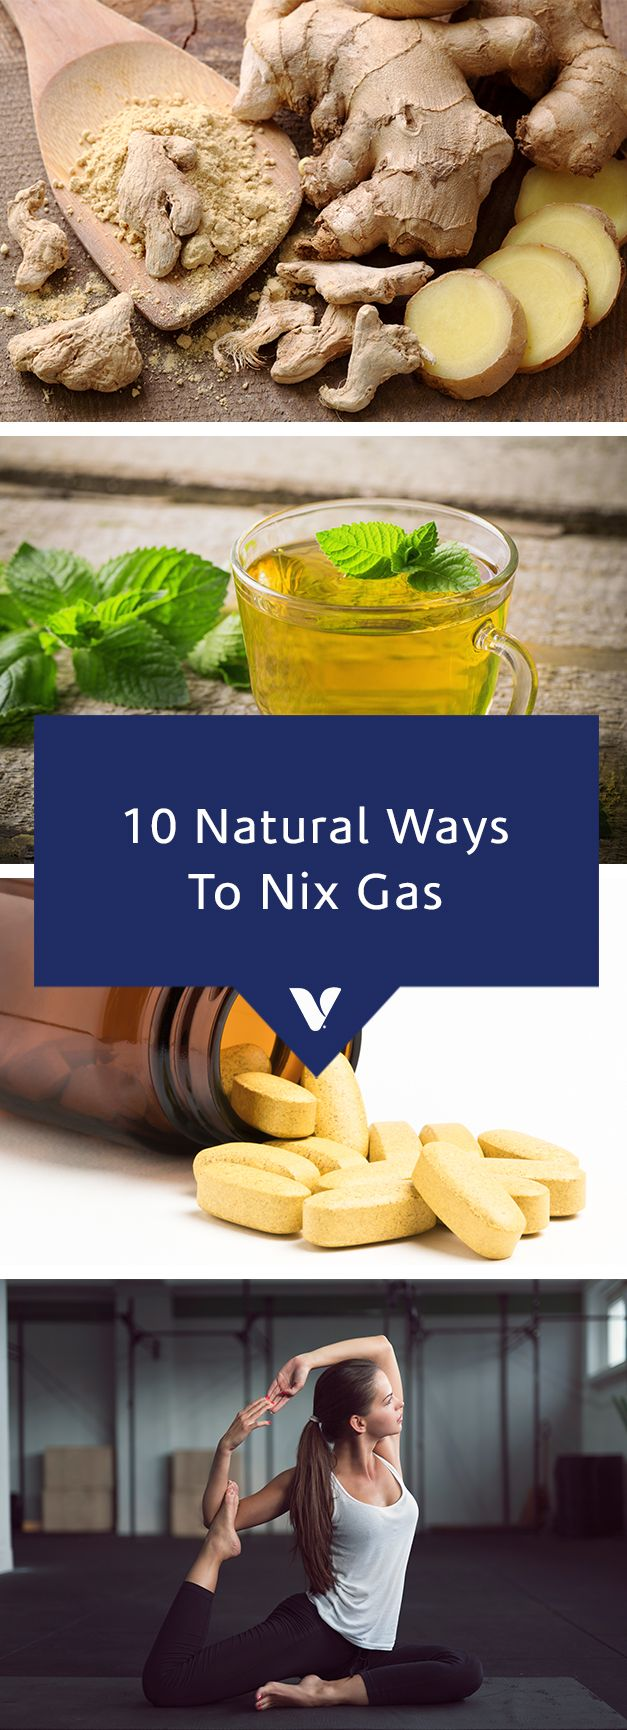 10 Natural Ways To Nix Gas - What's Good By V